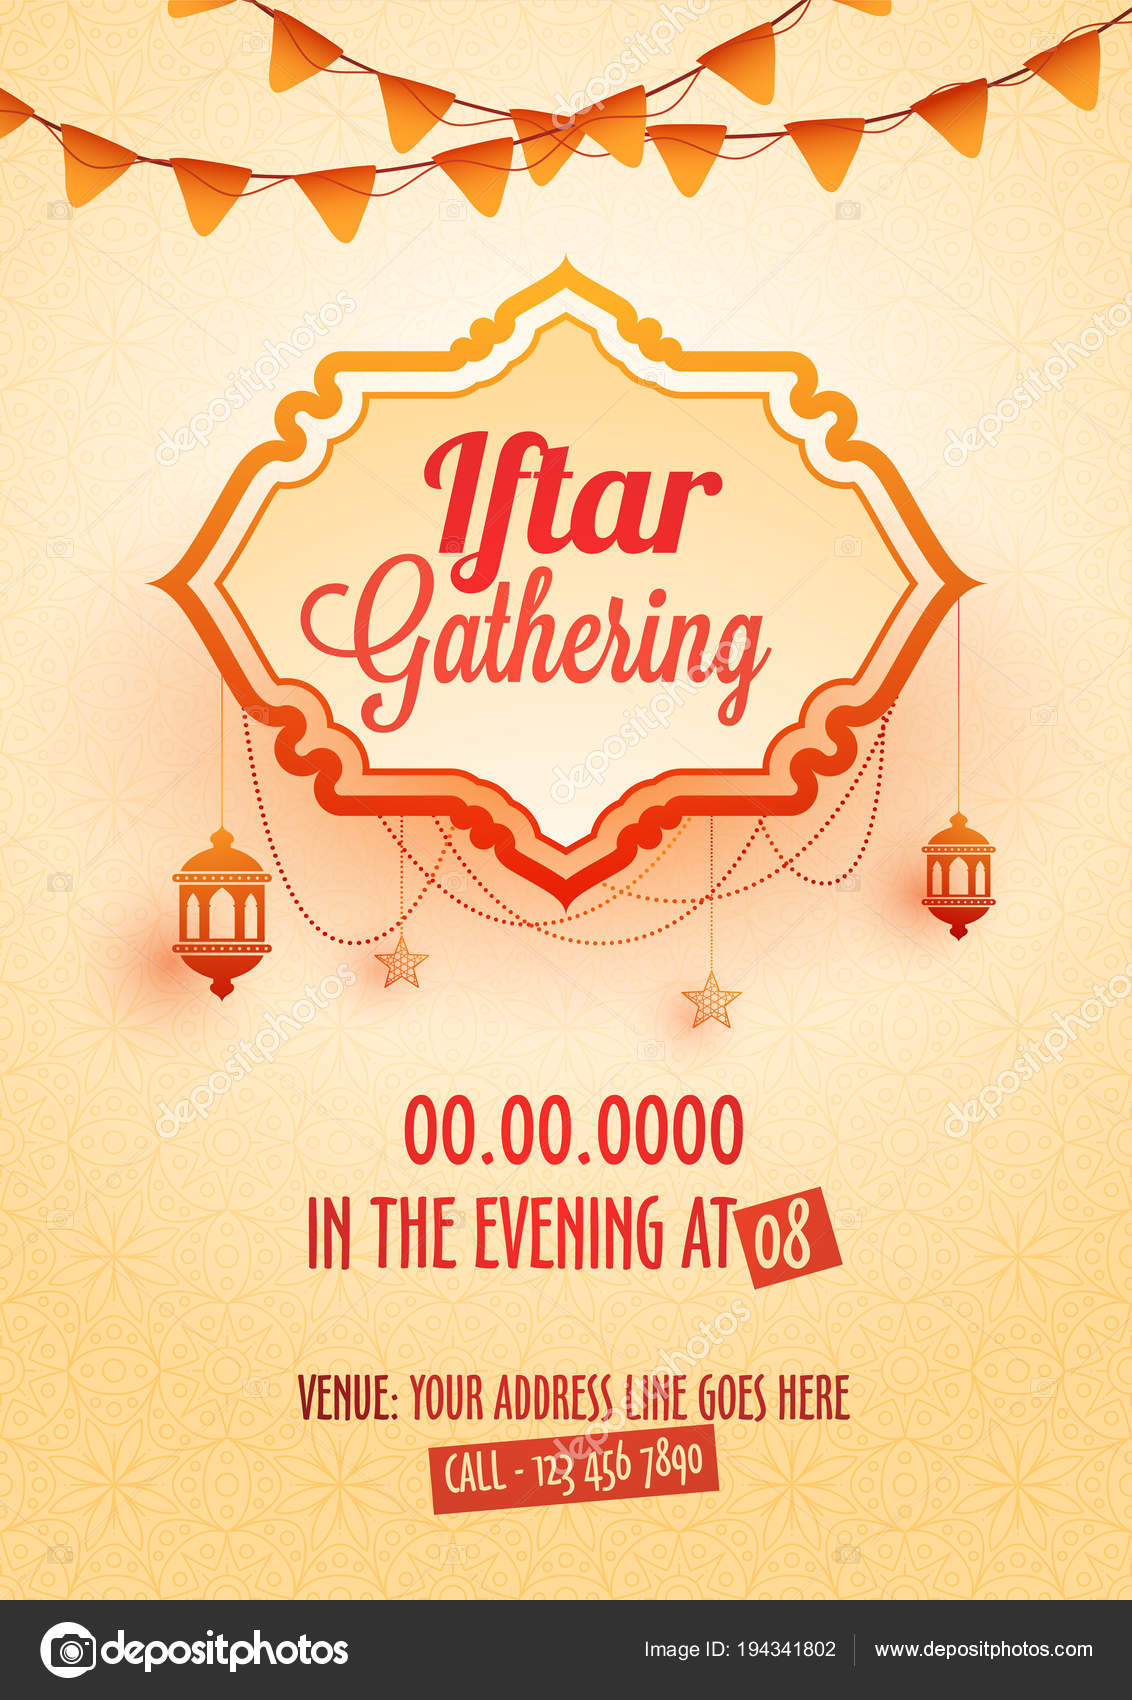 Iftar gathering invitation card design hanging lanterns bunting iftar gathering invitation card design hanging lanterns bunting flags venue stock vector stopboris Image collections